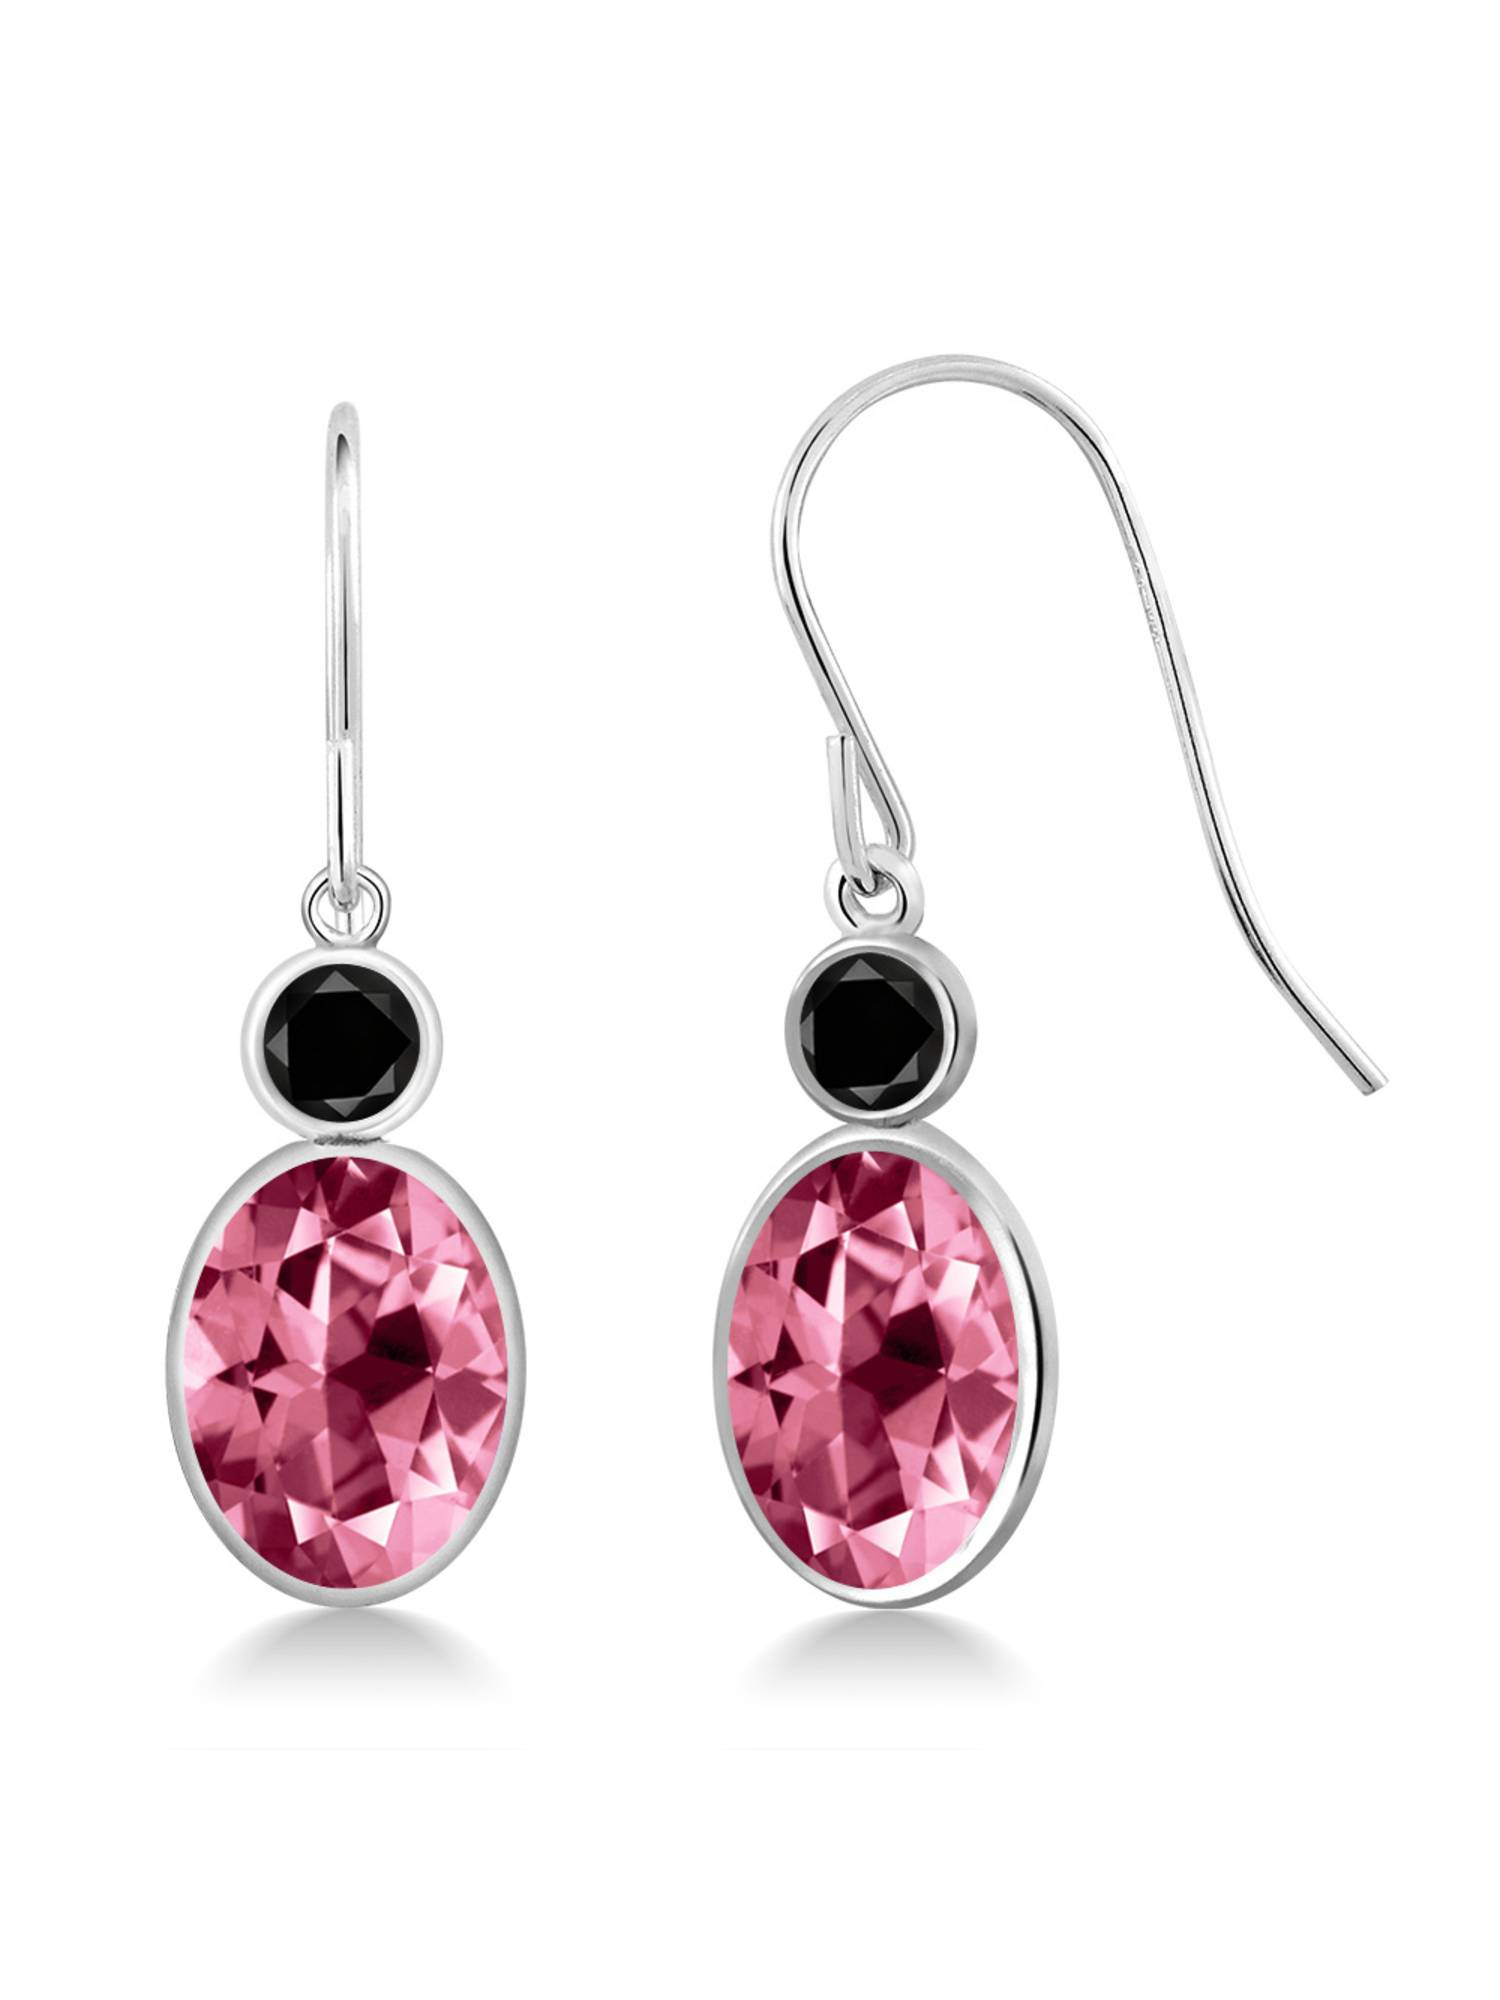 14K White Gold Diamond Earrings Set with Oval Pink Topaz from Swarovski by